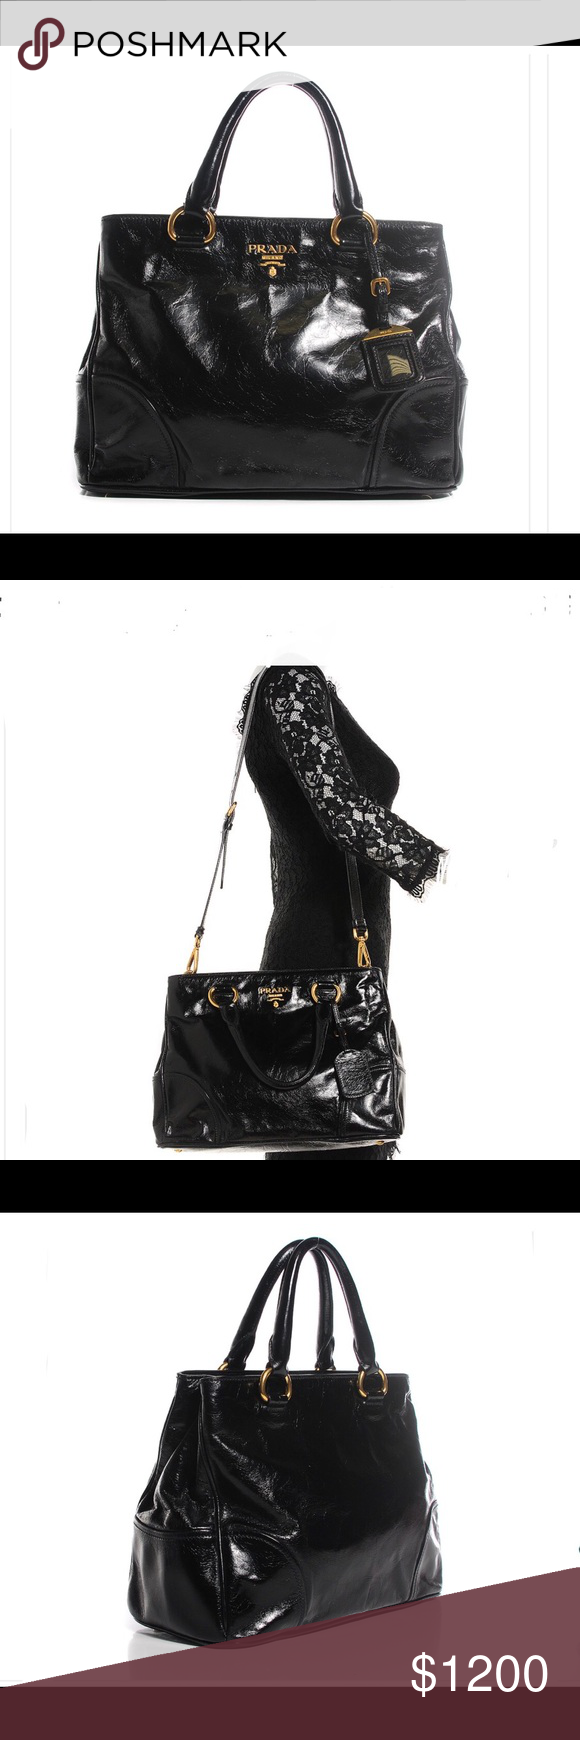 b95d06d9e6a435 New authentic Prada Vitello shine tote Nero Black This stunning Prada tote  is crafted of semi-distressed shiny leather. The bag features rolled  leather top ...